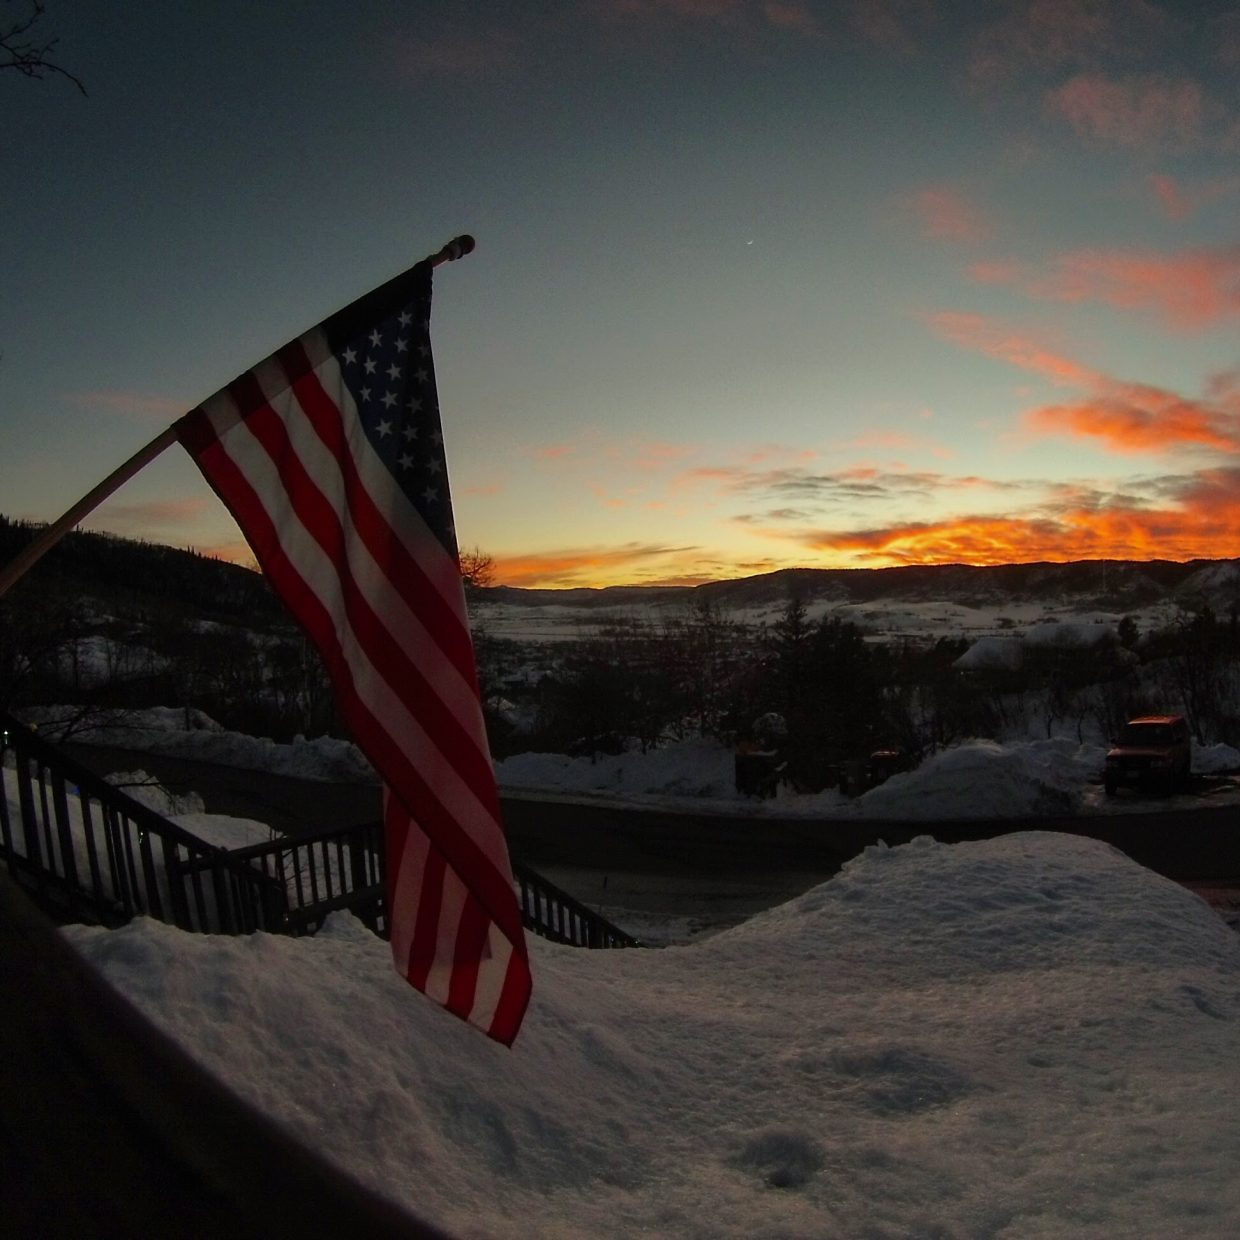 Sunset looking South from Steamboat Springs. Submitted by Michael Green.